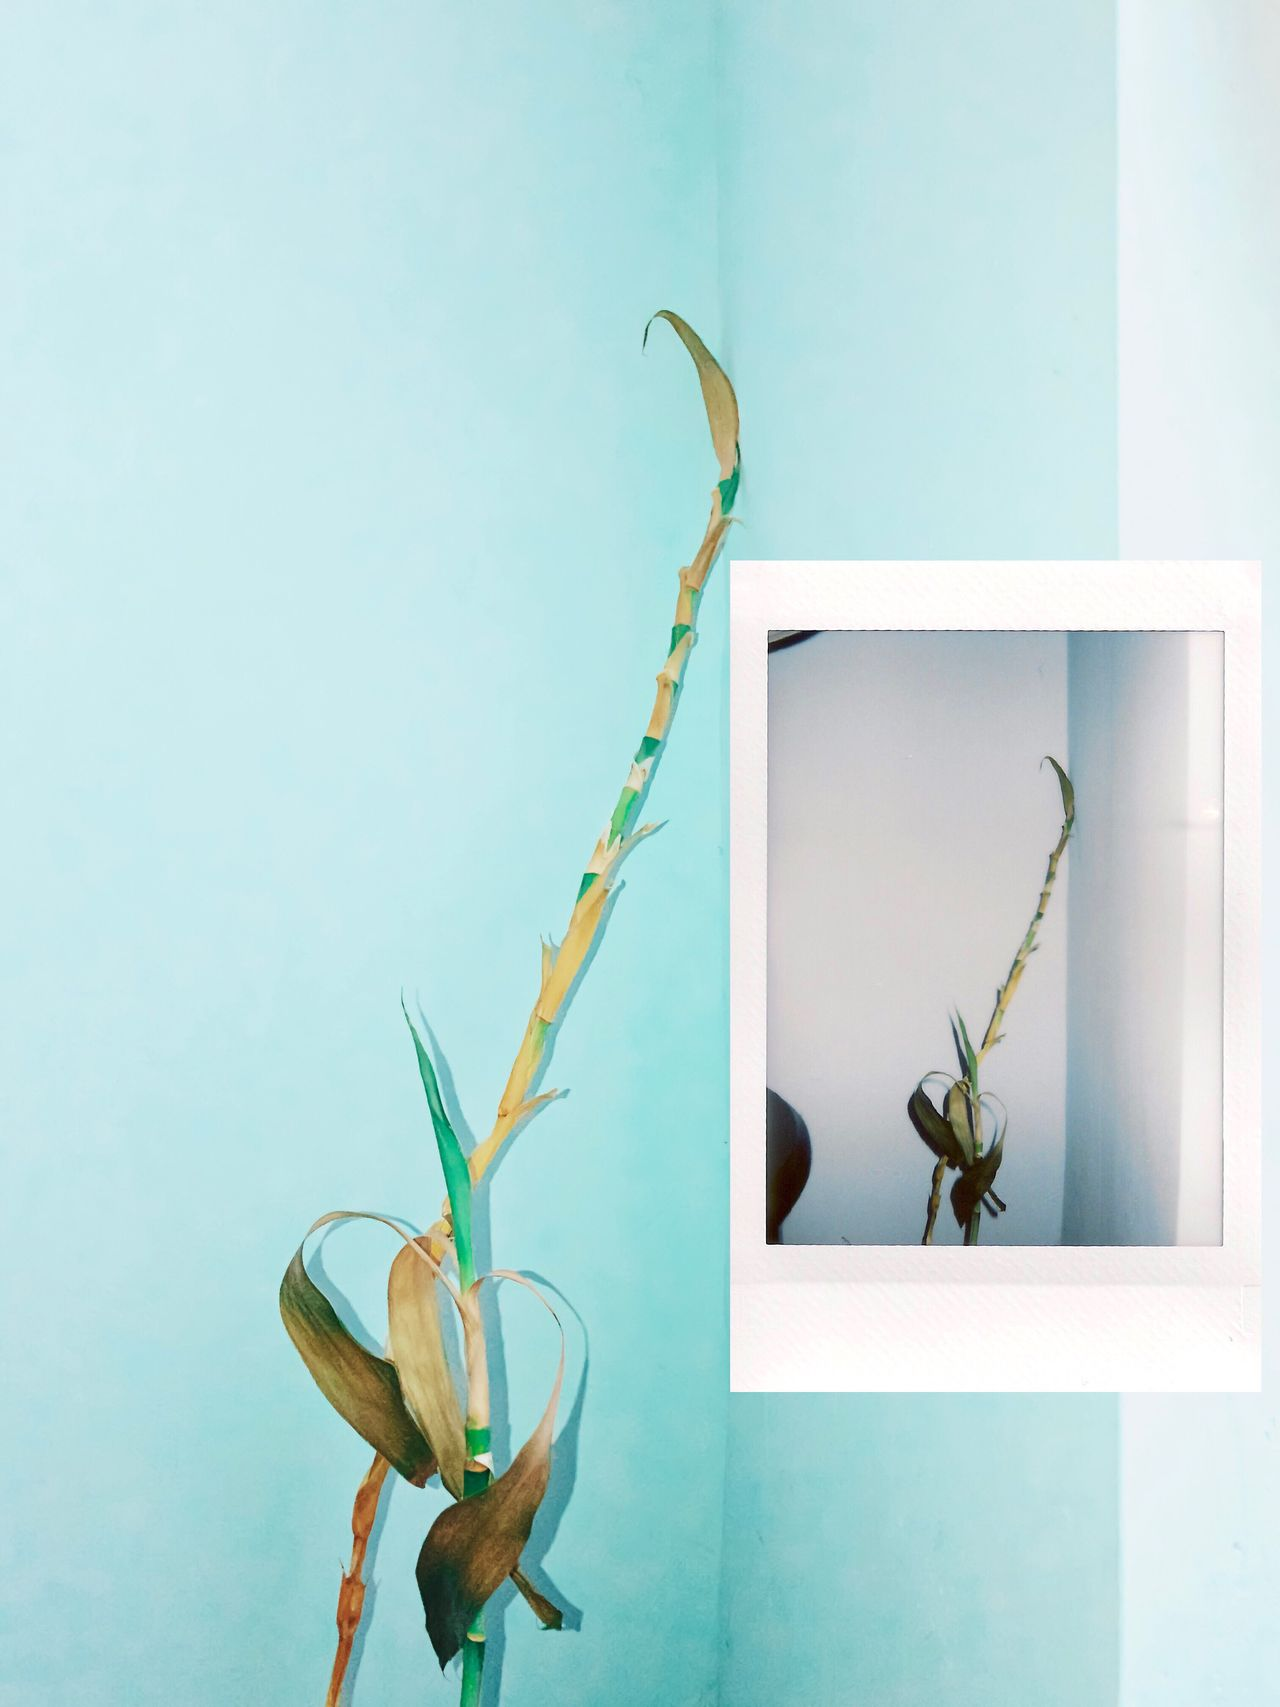 Instant Photo A Day Growth Nature Plant Fragility Flower No People Leaf Beauty In Nature Green Color Animal Themes Freshness Day Close-up Flower Head Outdoors Minimalism Aesthetics Simplicity Film Photography Film Is Not Dead Growth Nature Beauty In Nature